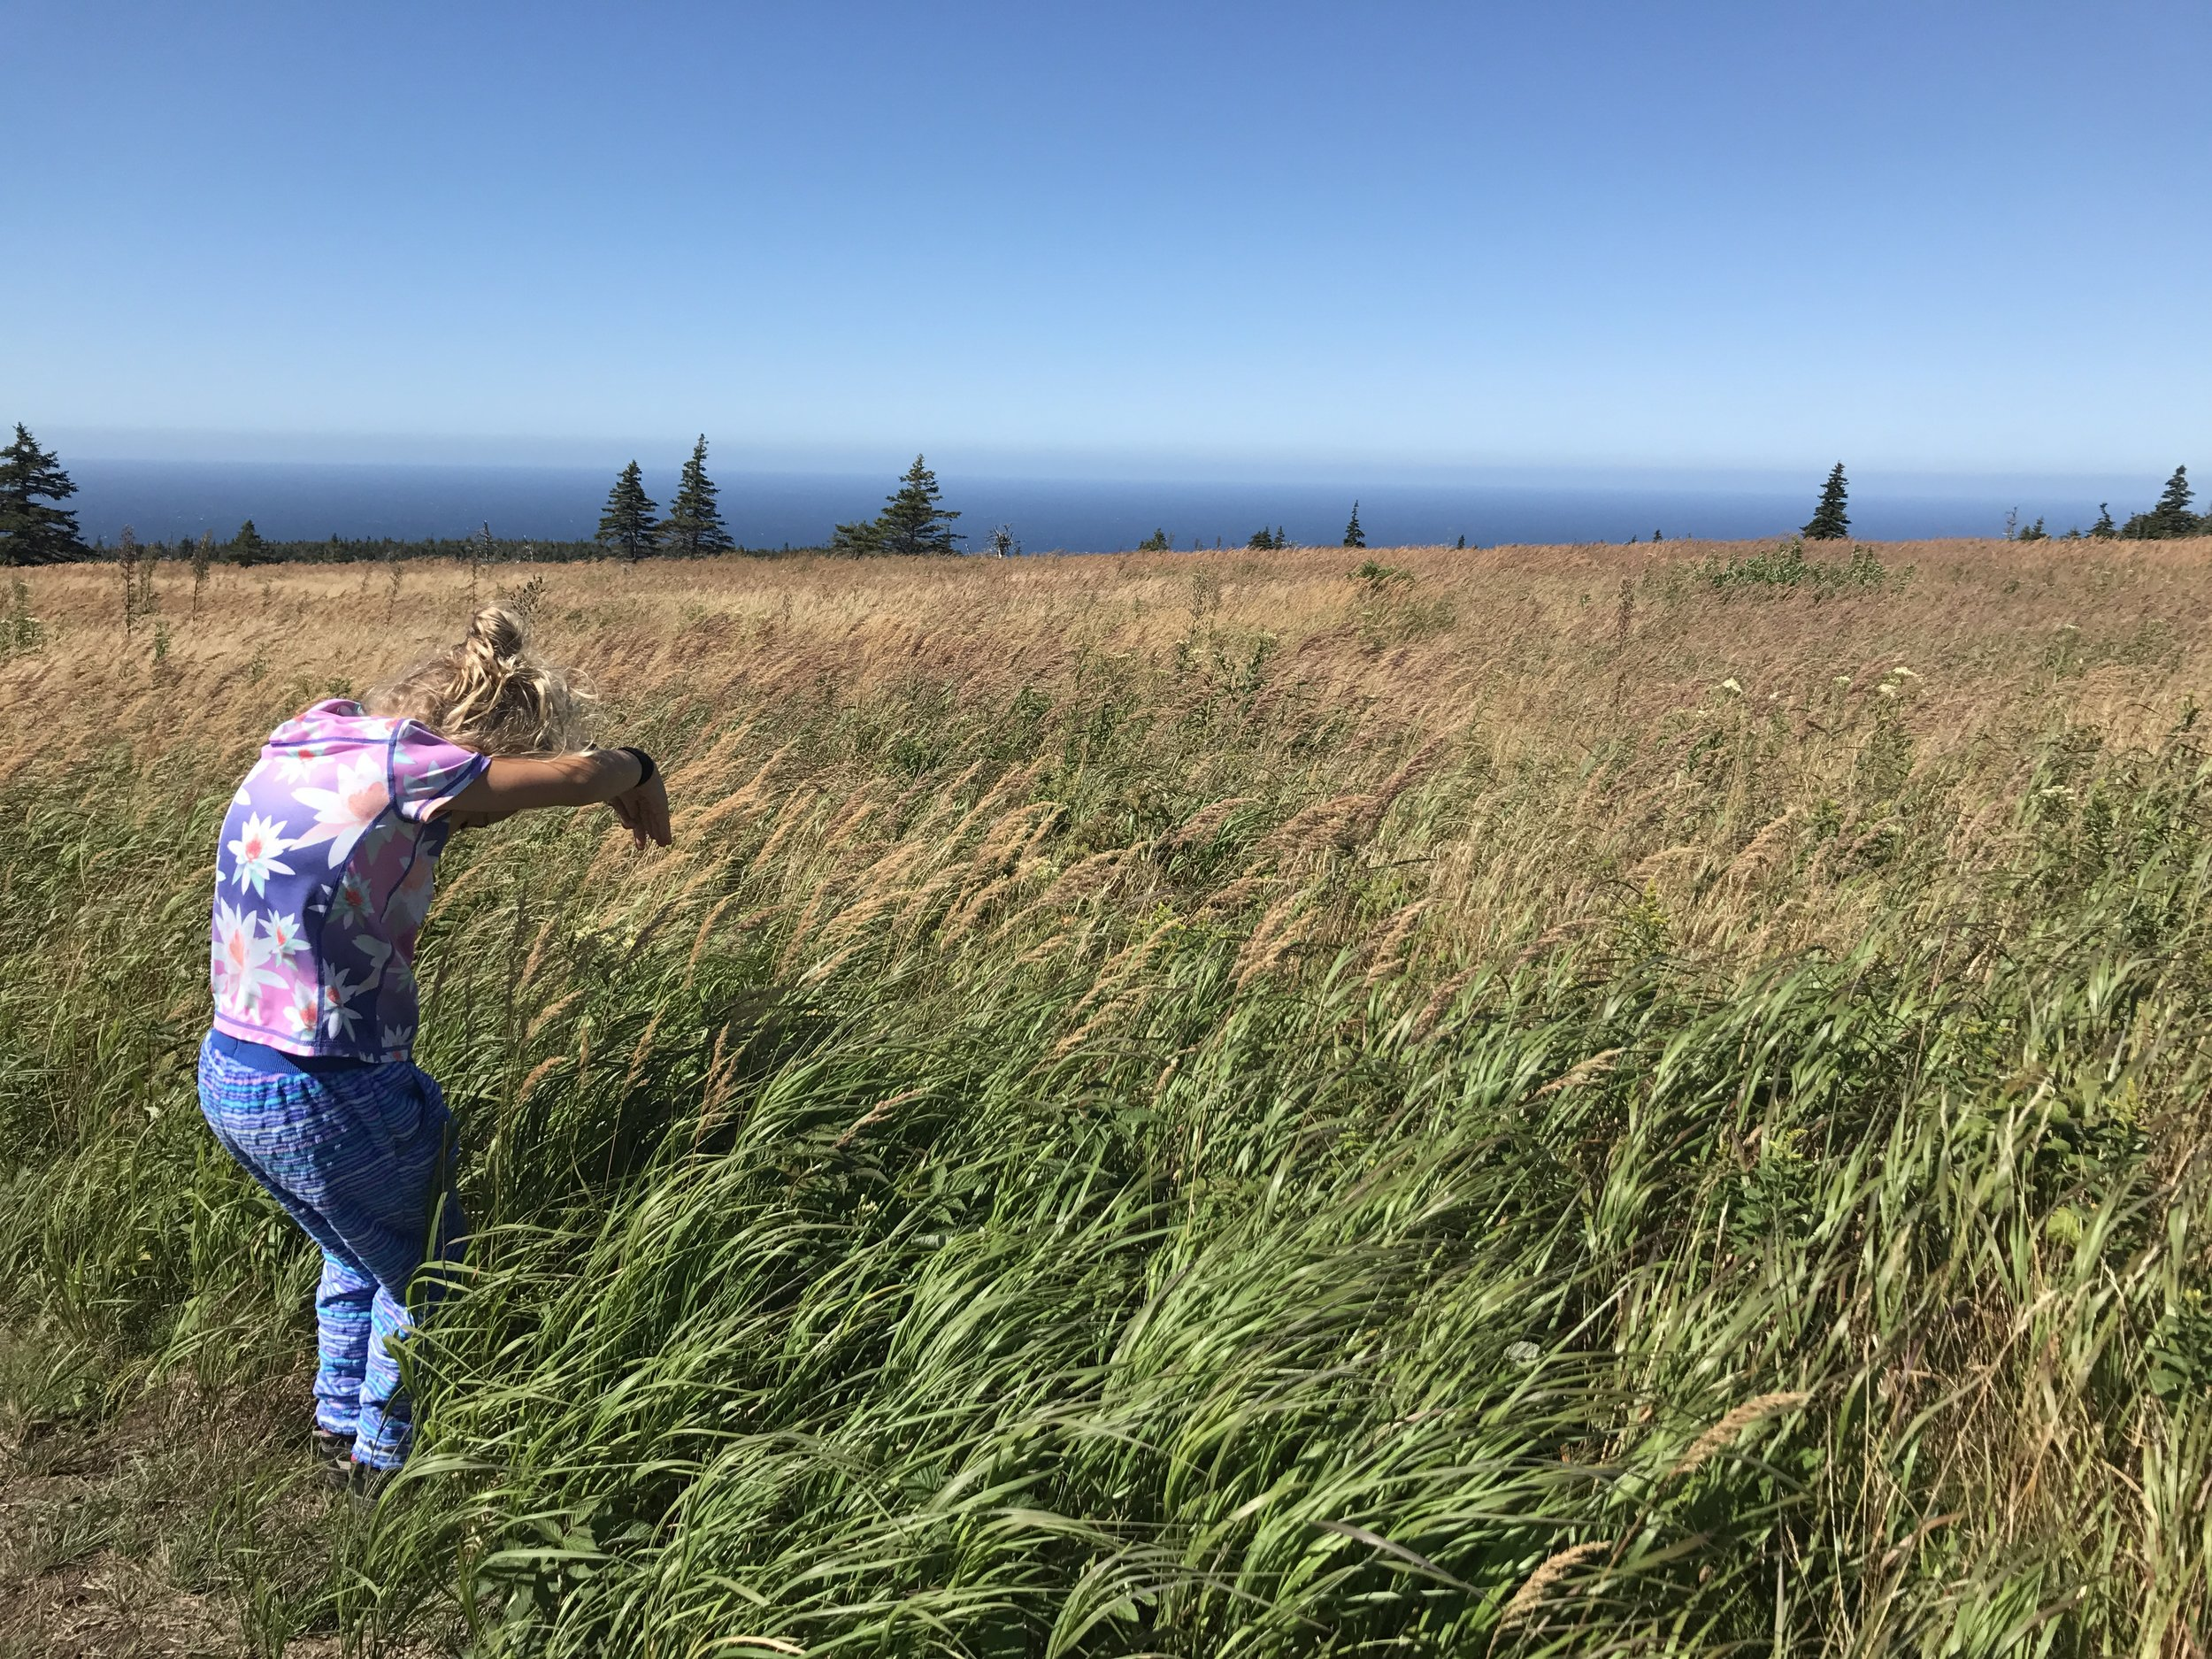 It was breezy on the trail and the grass showed it. This is Ellie's interpretation.